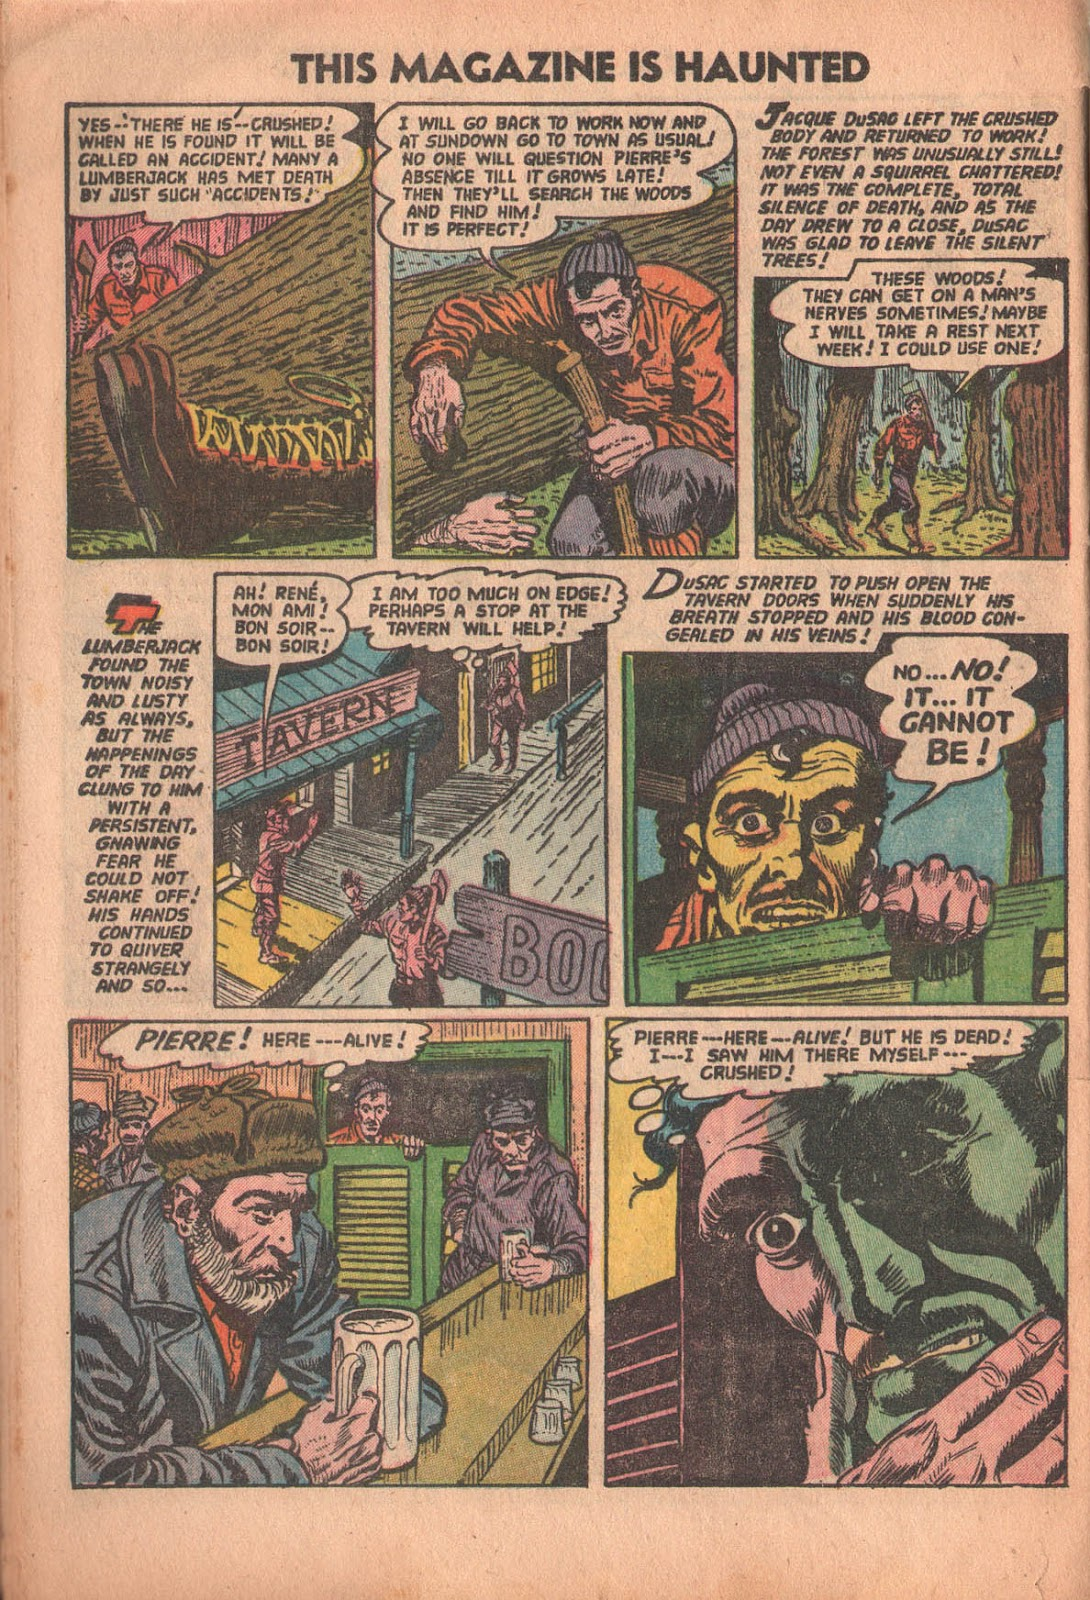 Read online This Magazine Is Haunted comic -  Issue #15 - 32